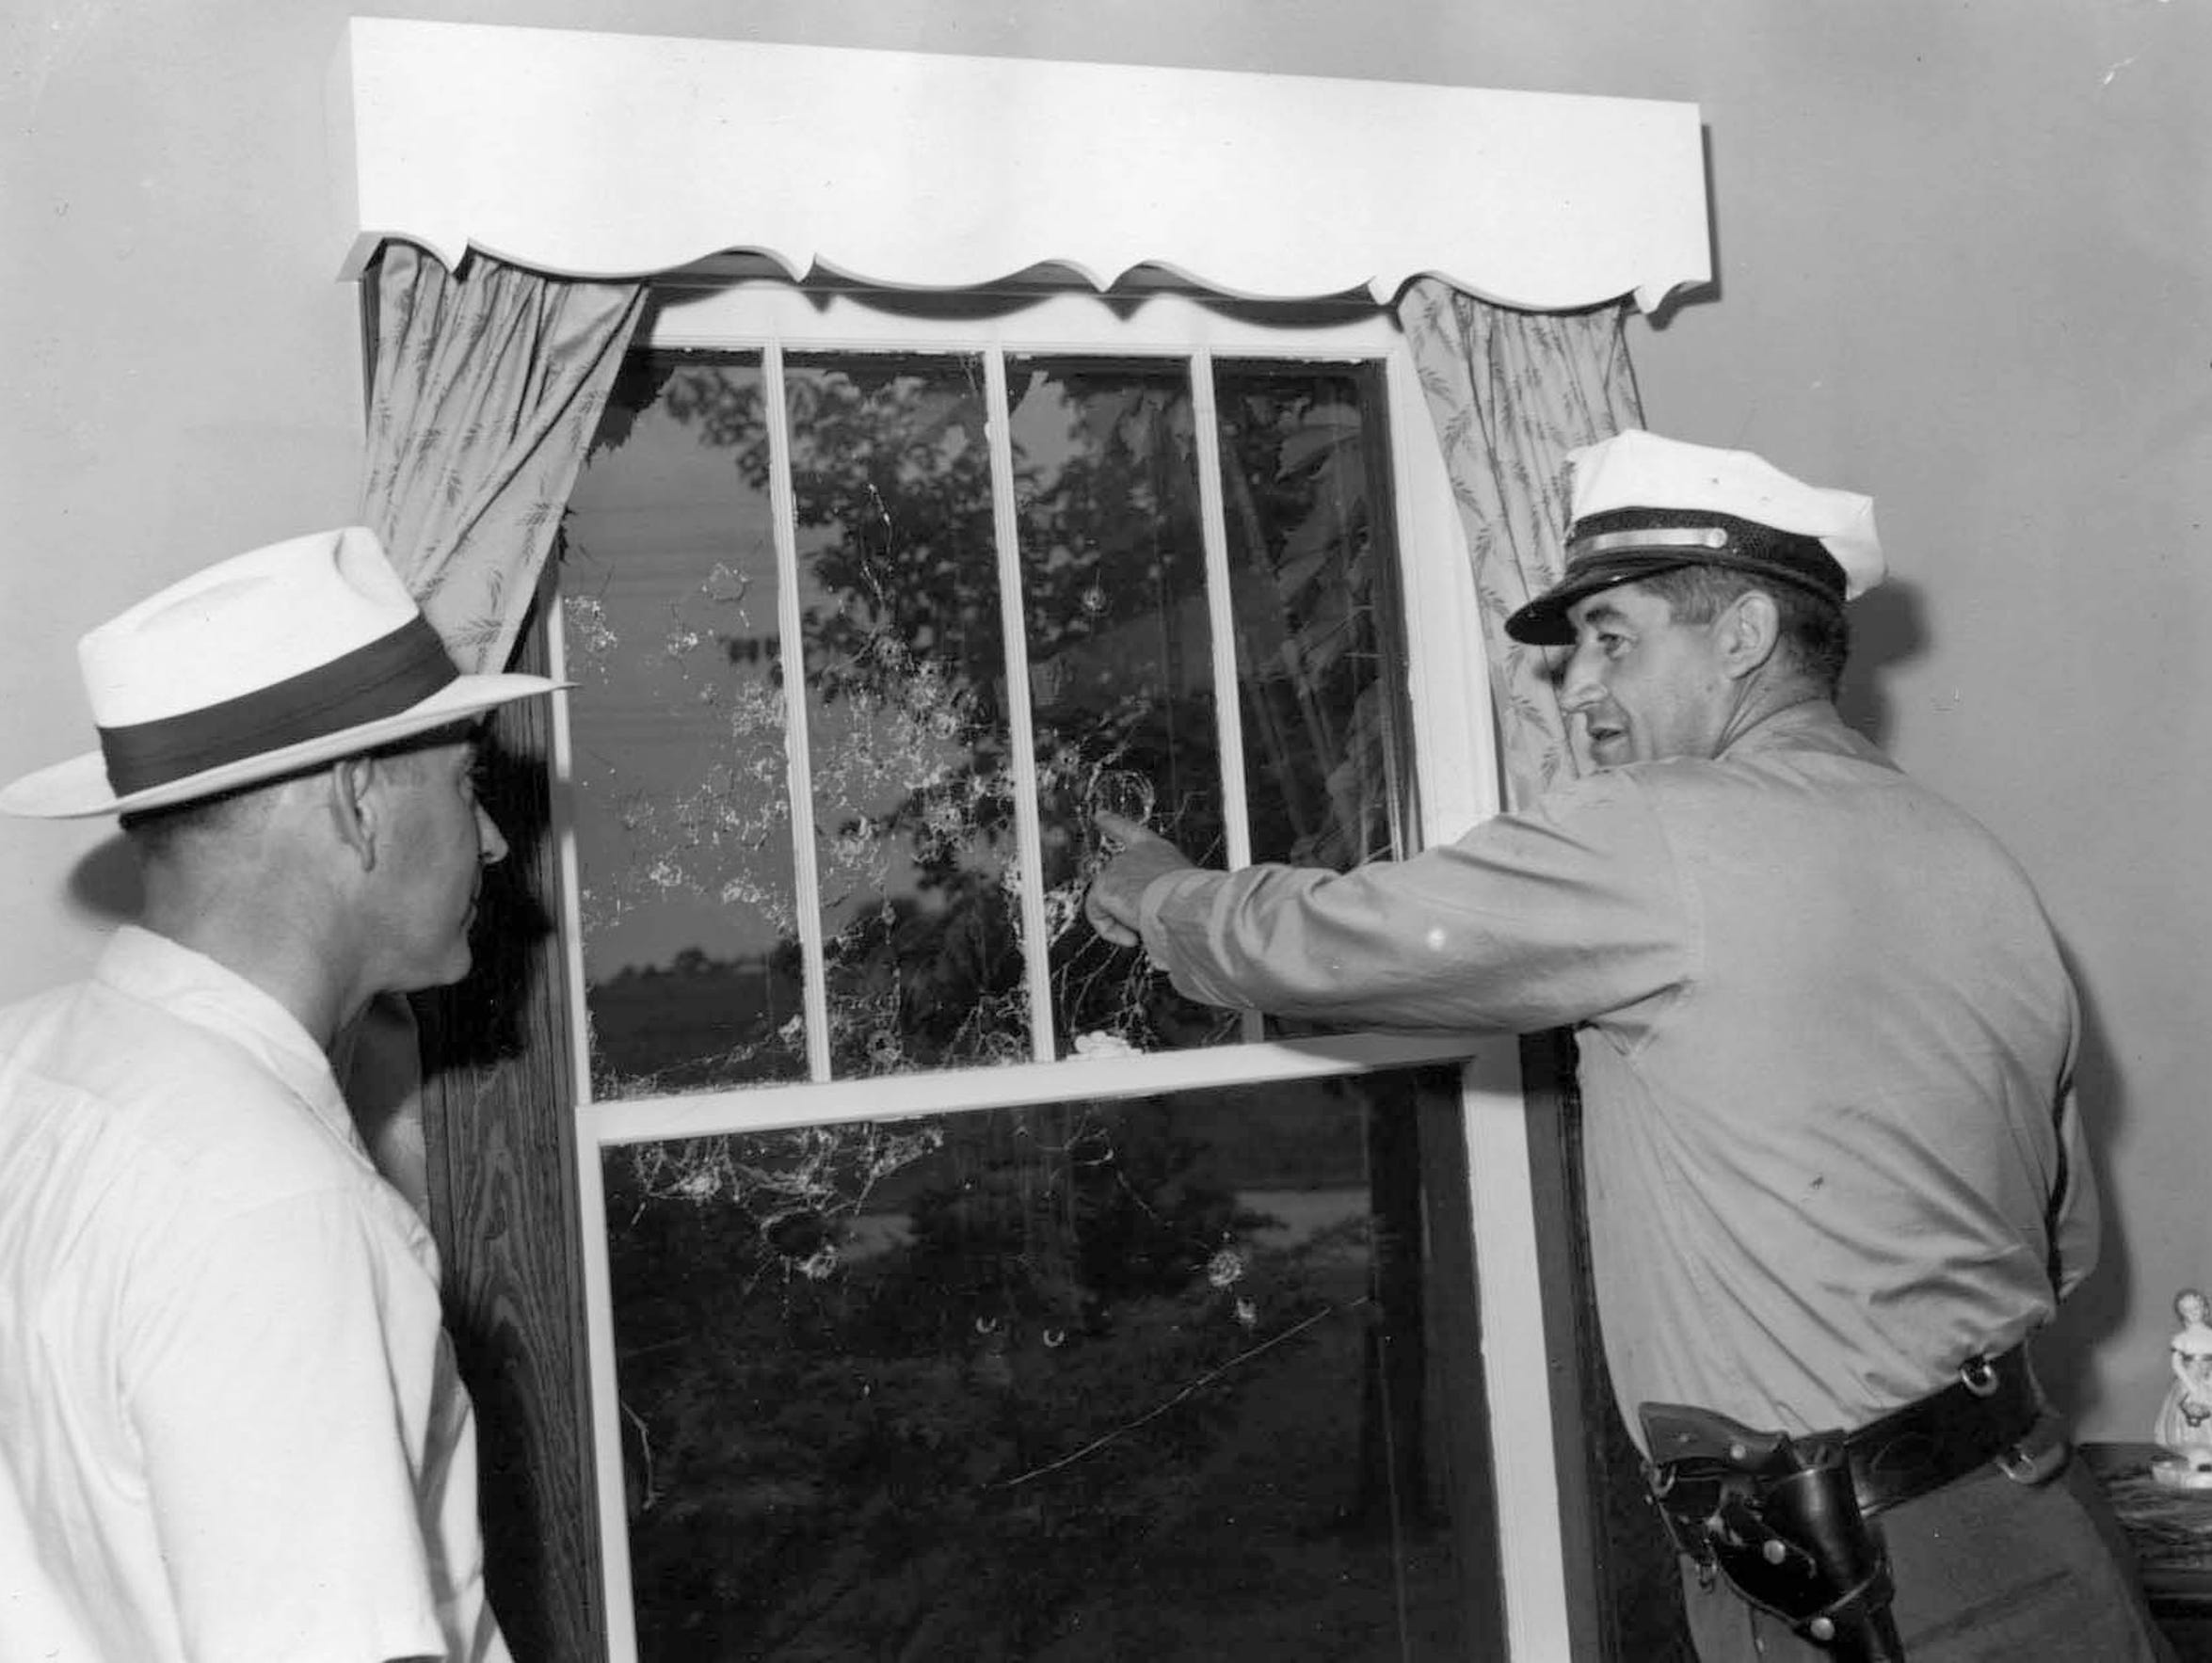 6-29-1954 Shotgun blast window at Harold J. curtis,